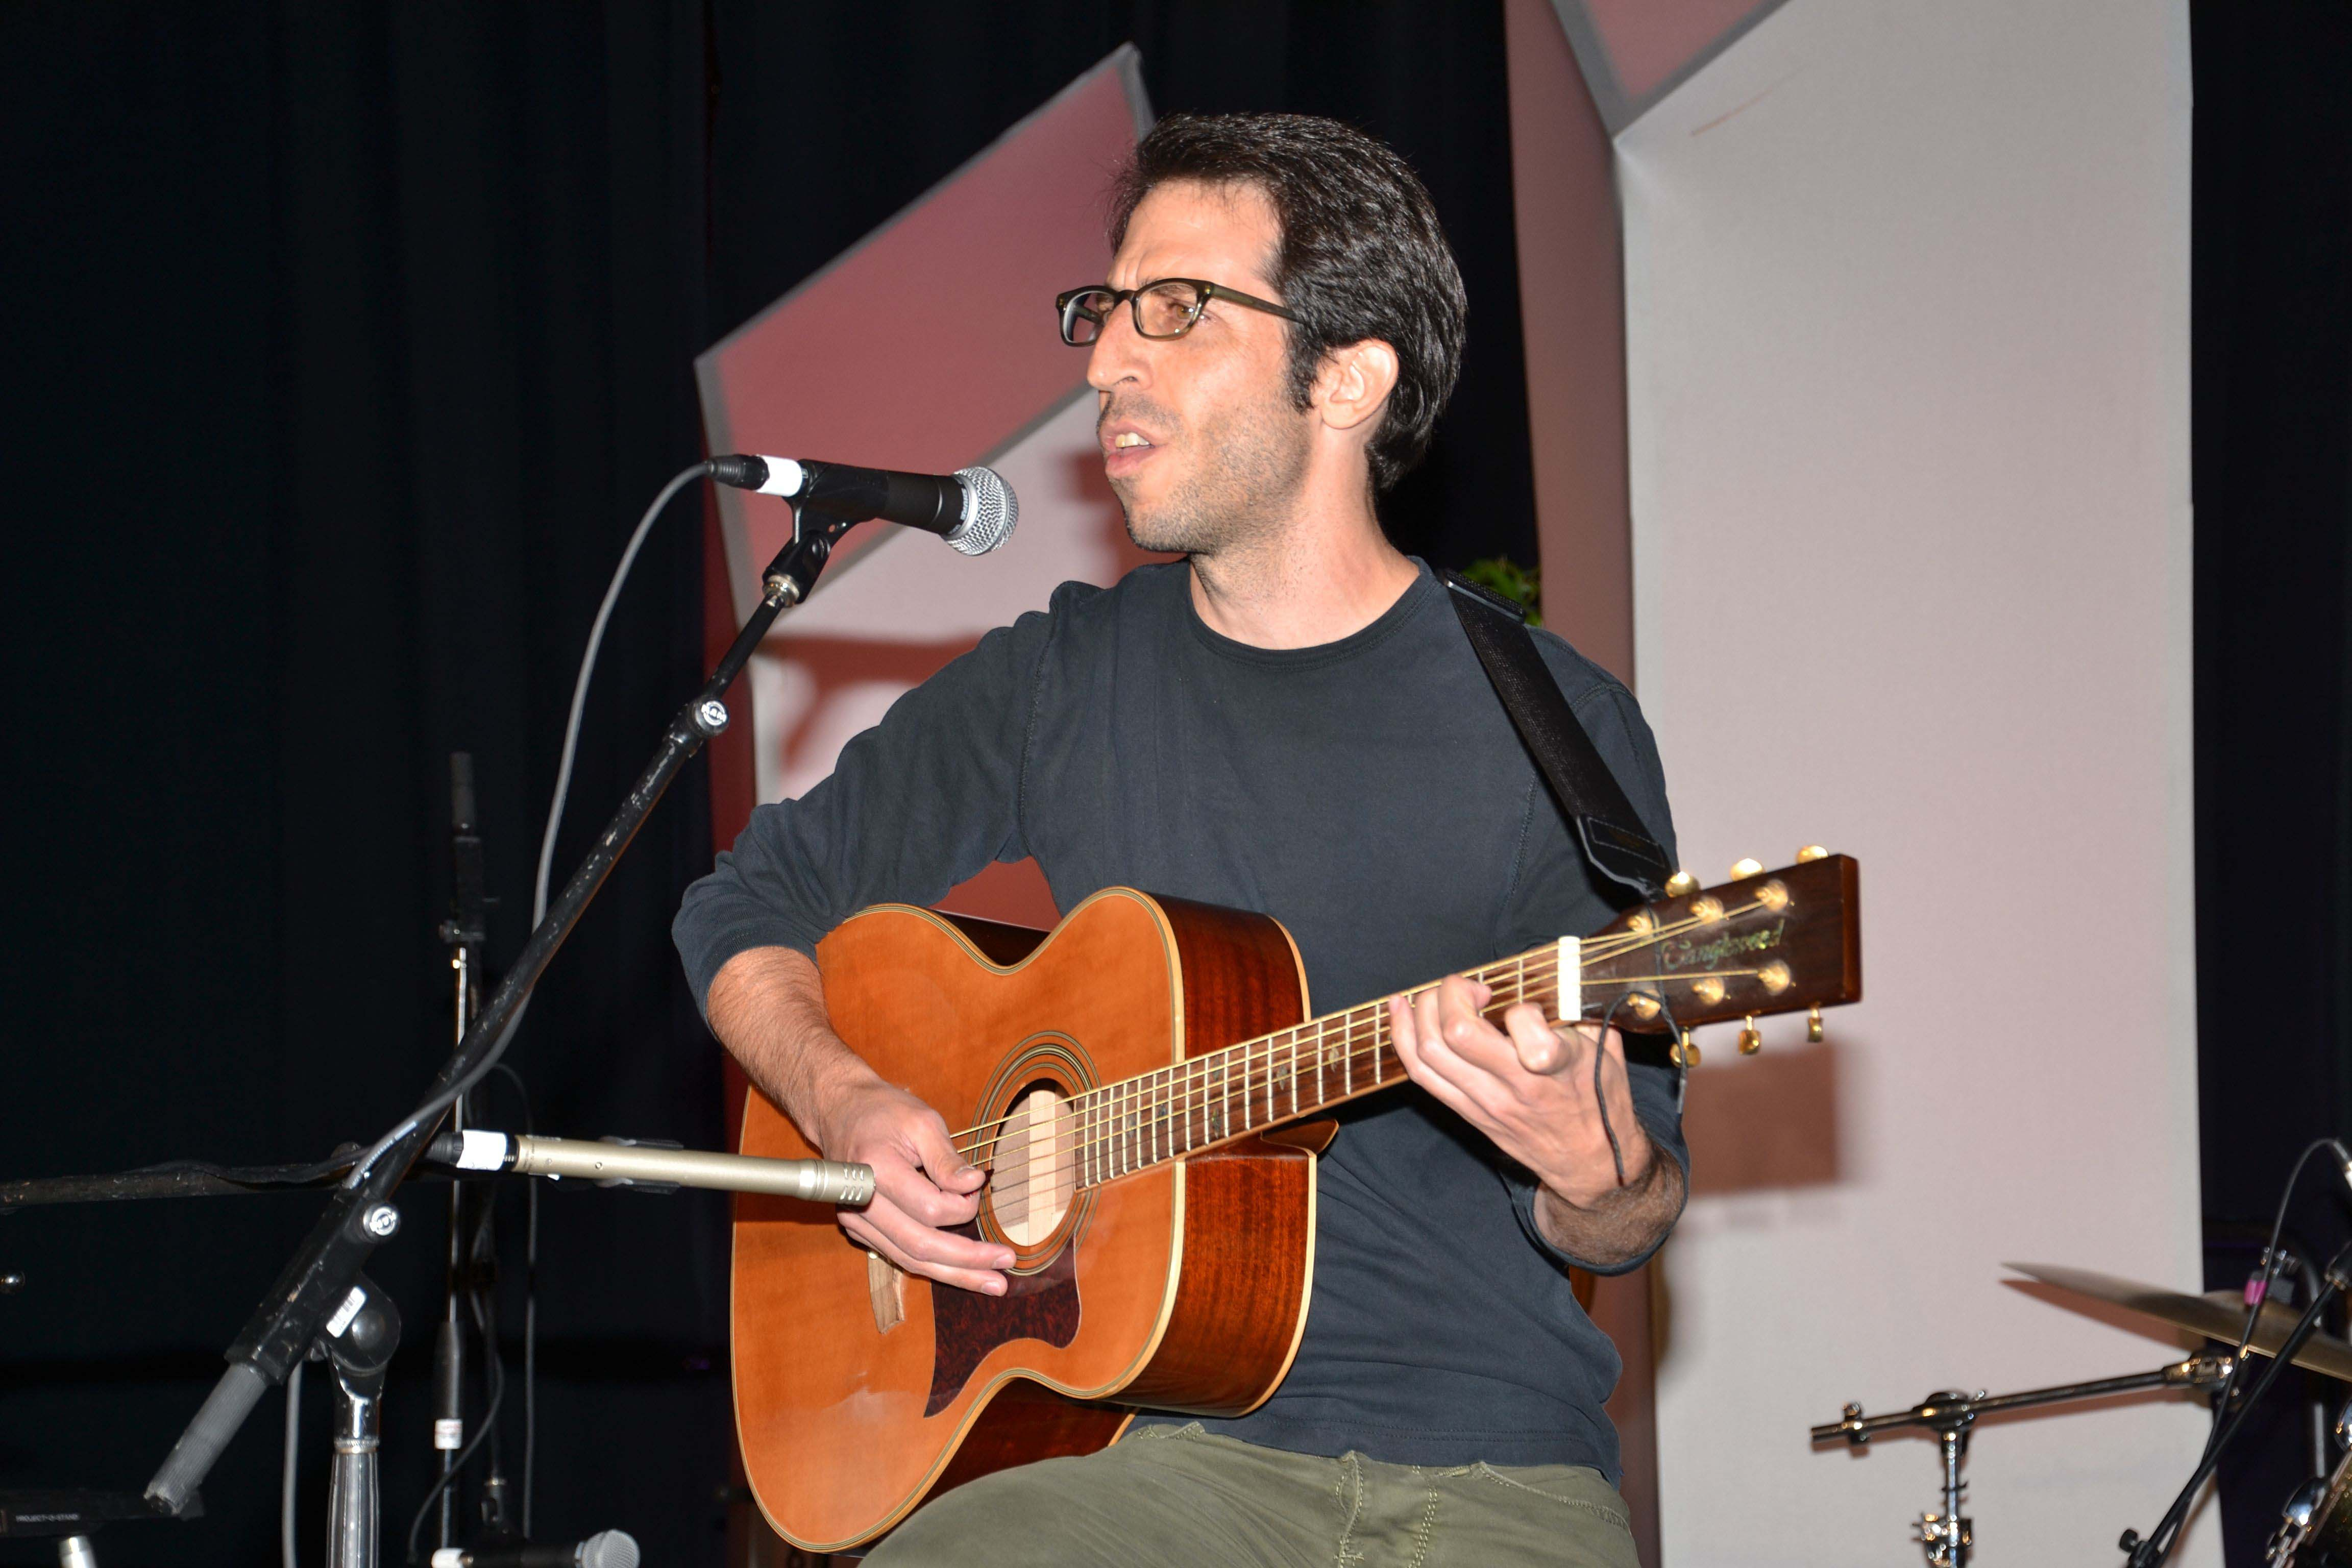 Avner Haley of Almost Shirley performs in the ASA's Got Talent competition